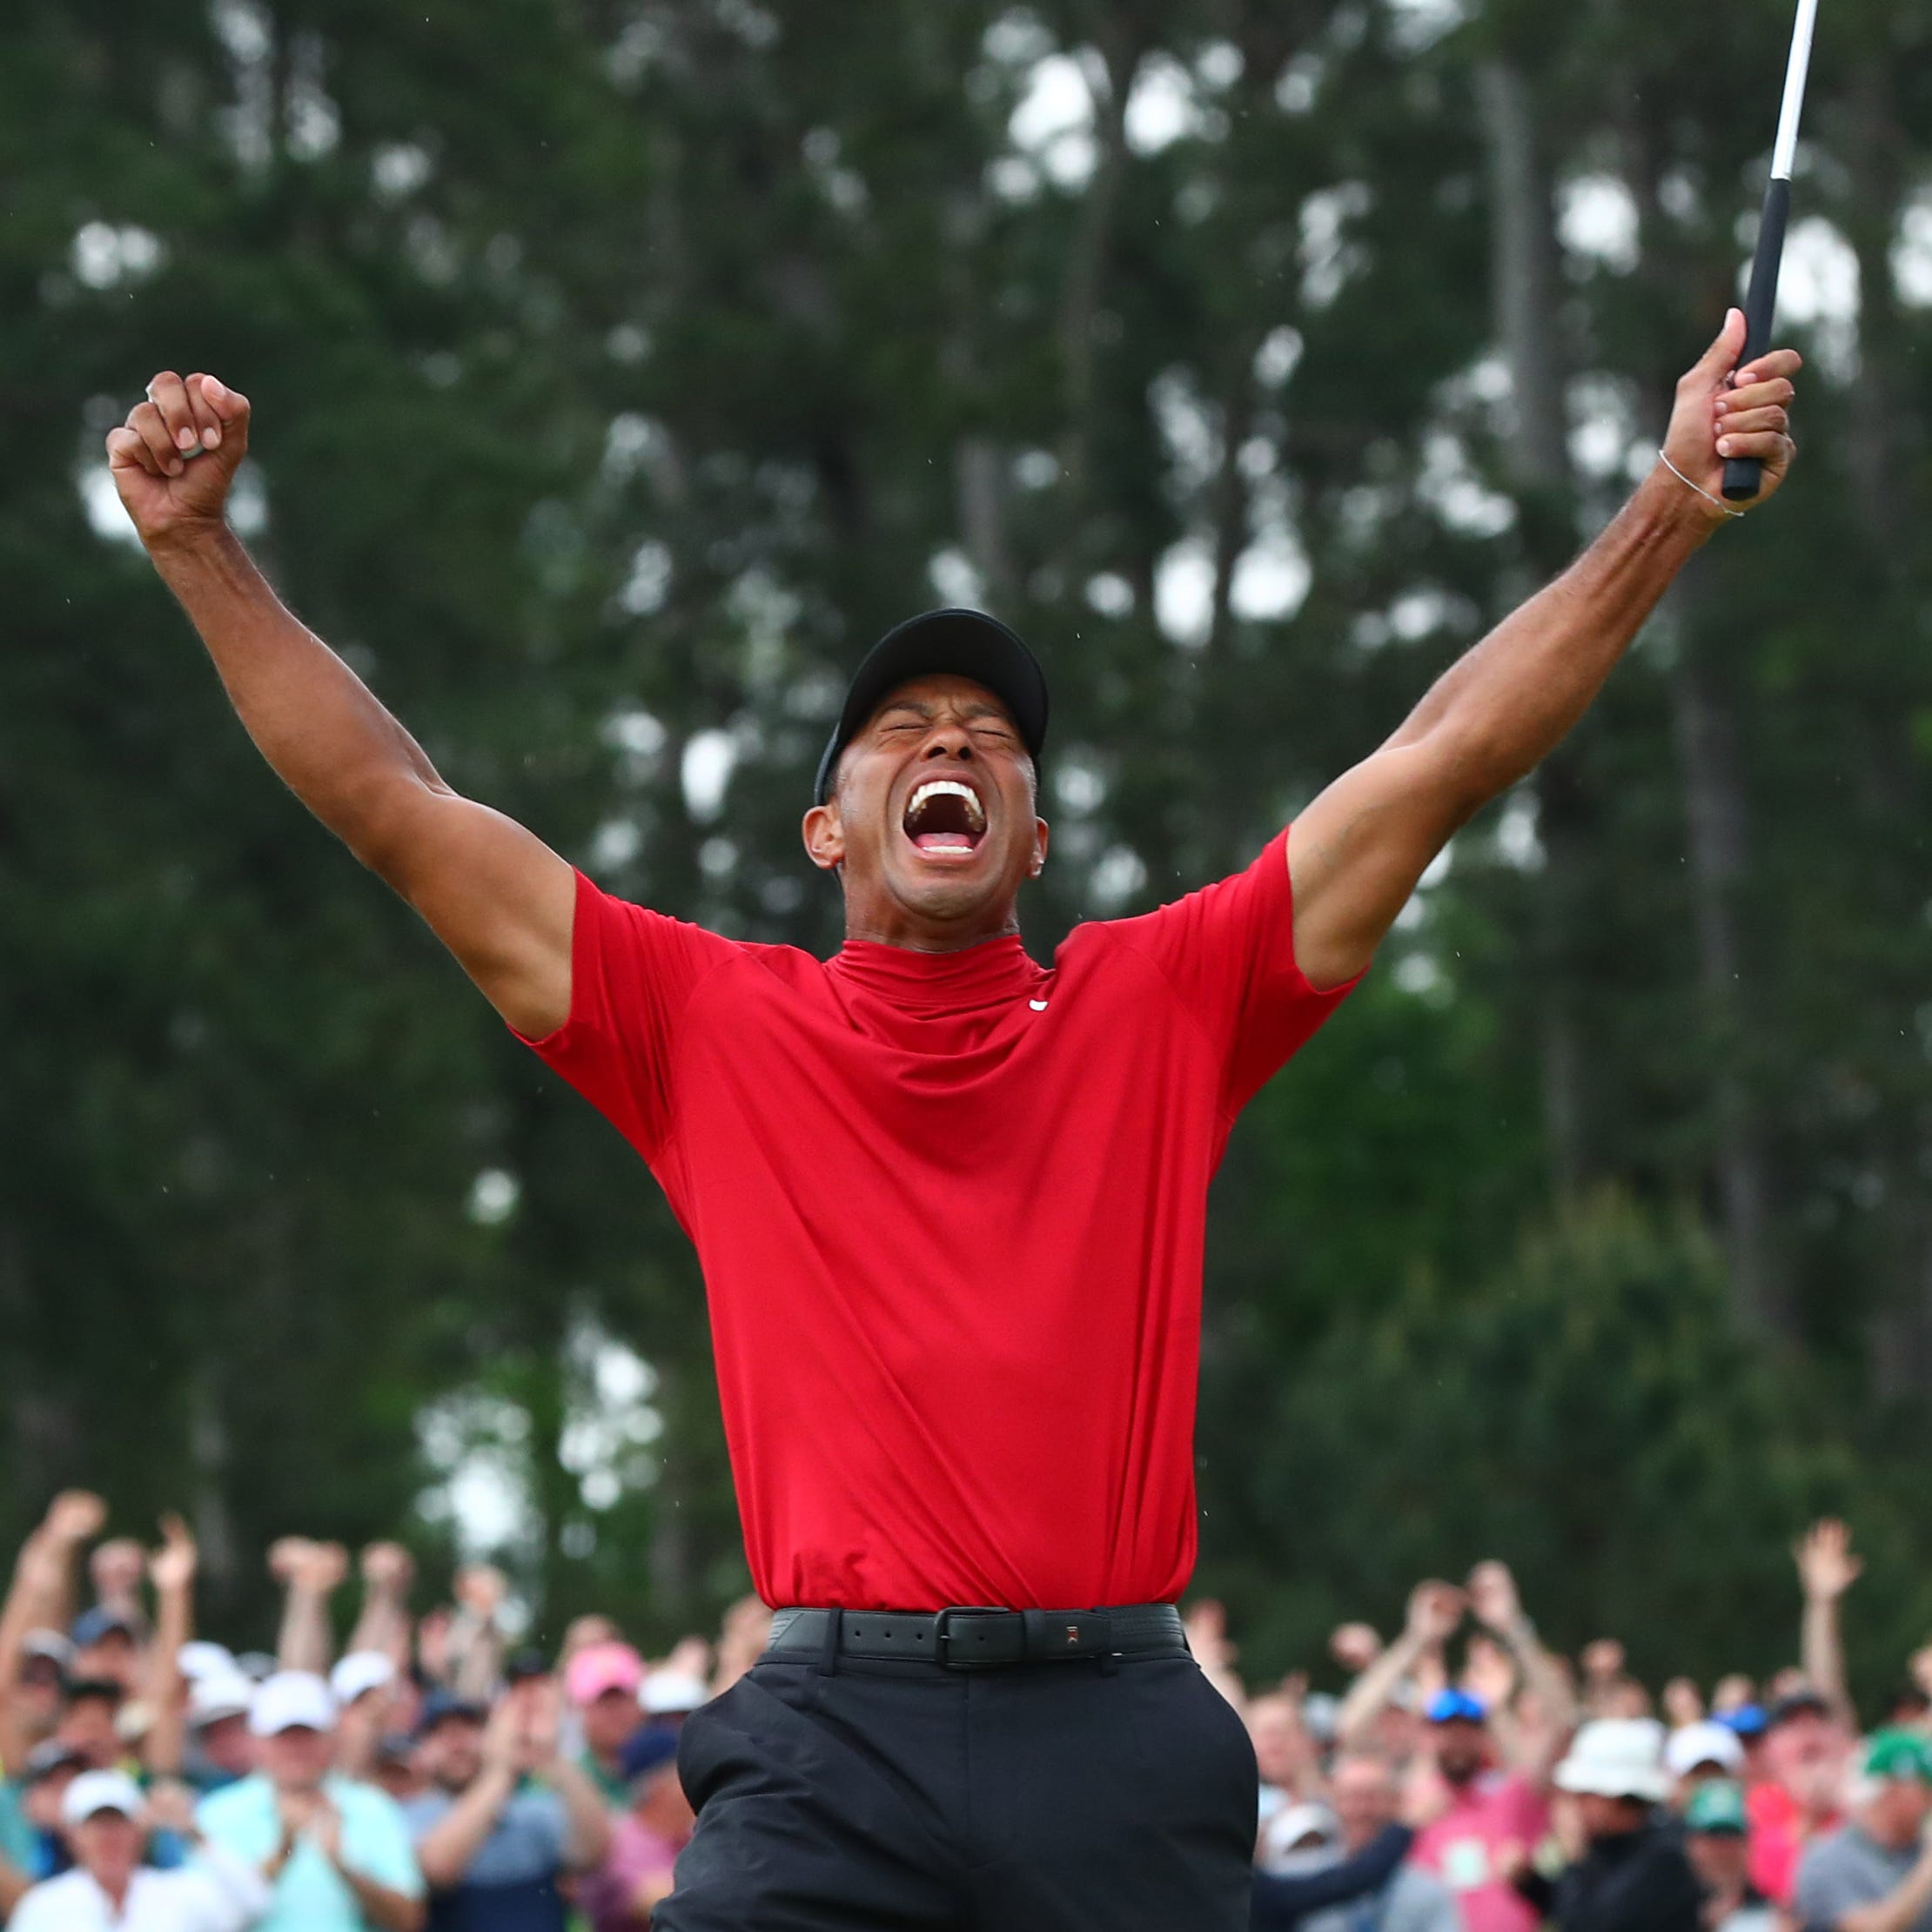 In Mississippi, Georgia and Detroit, I watched Tiger Woods' victory bring Americans together